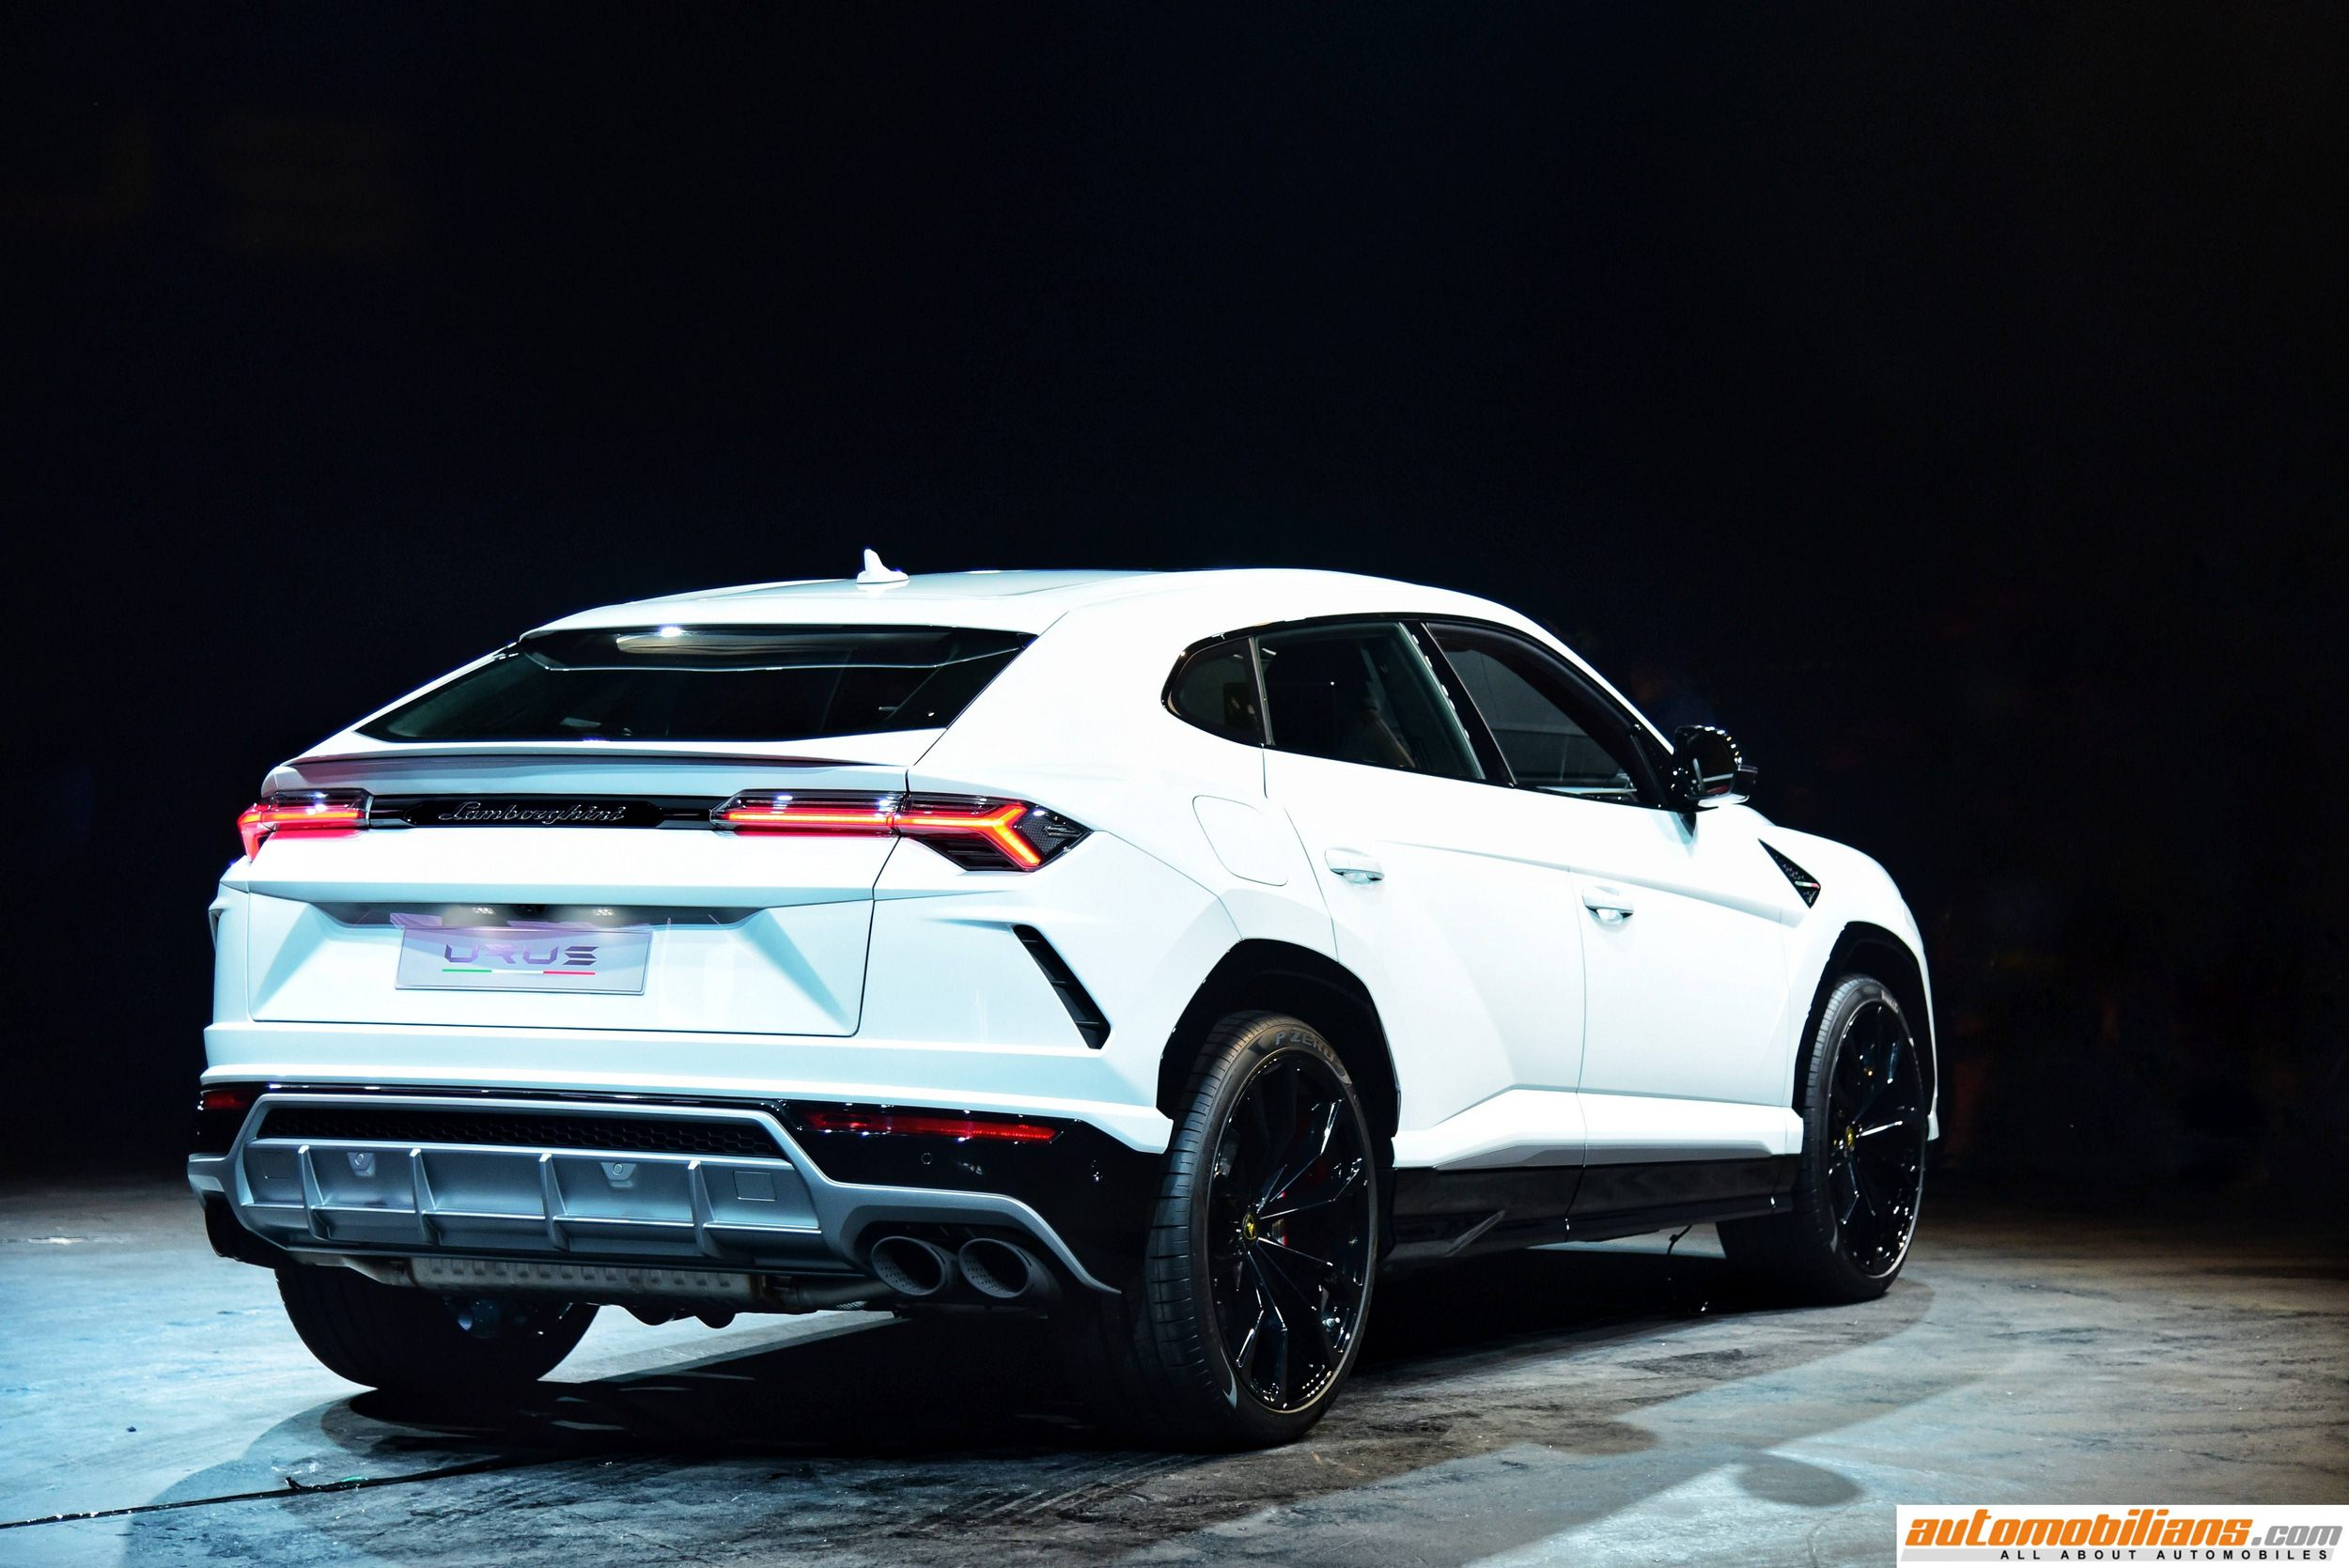 top compar price news lamborghini suv the grand urus table trackhawk speed jeep cars comparing two car and for cherokee